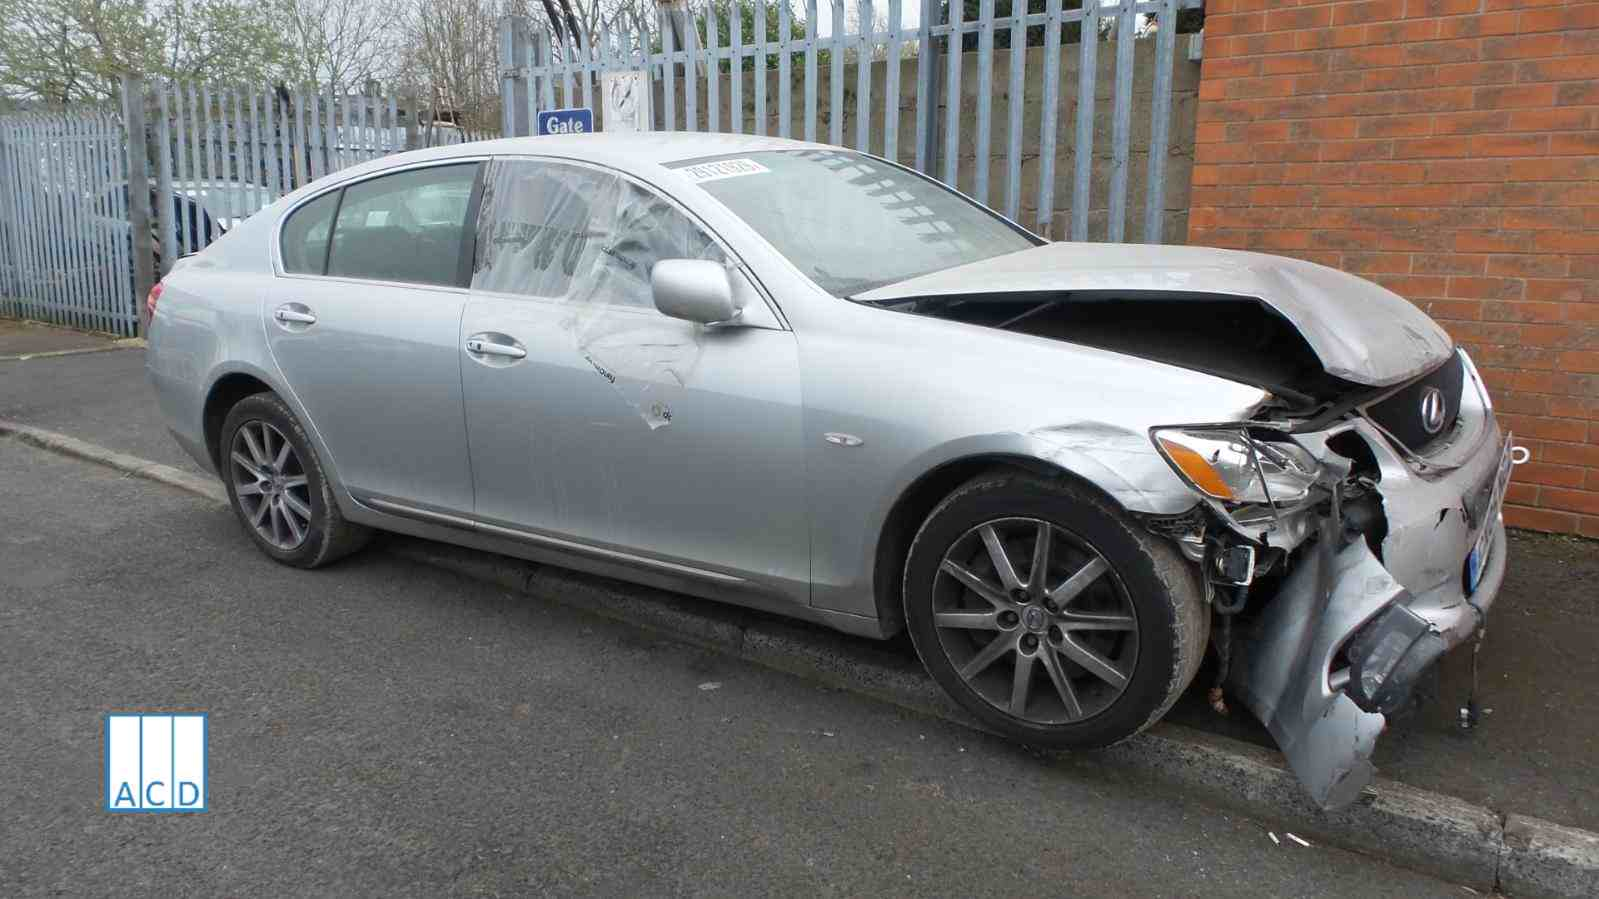 Lexus GS300 SE 3.0L Petrol 5-Speed Automatic 2005 #2813 01